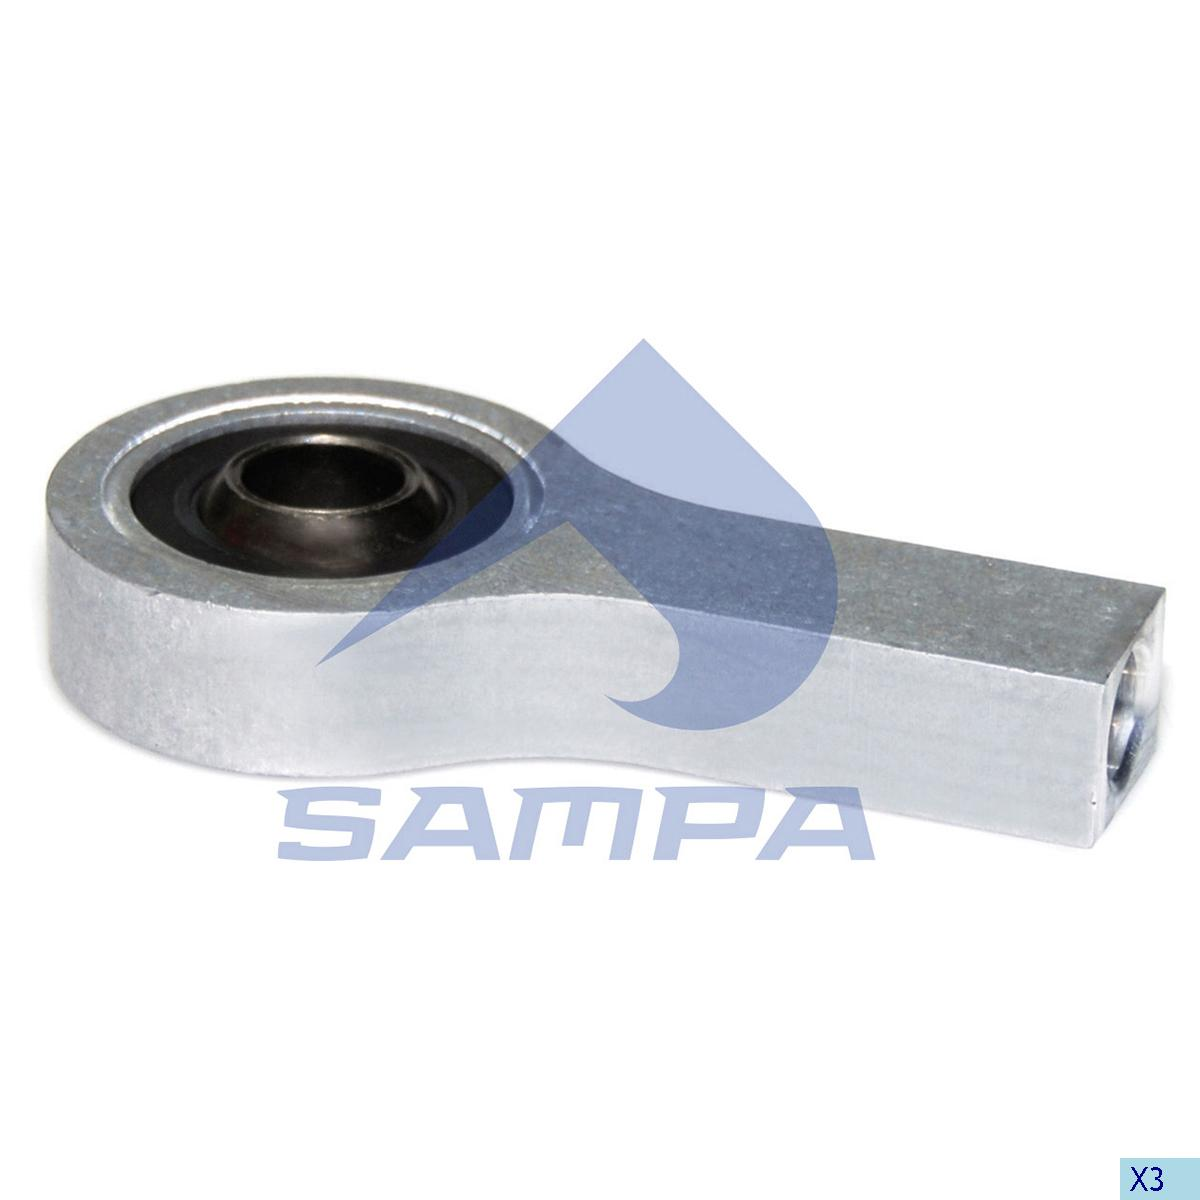 Bearing, Cab, Scania, Cab